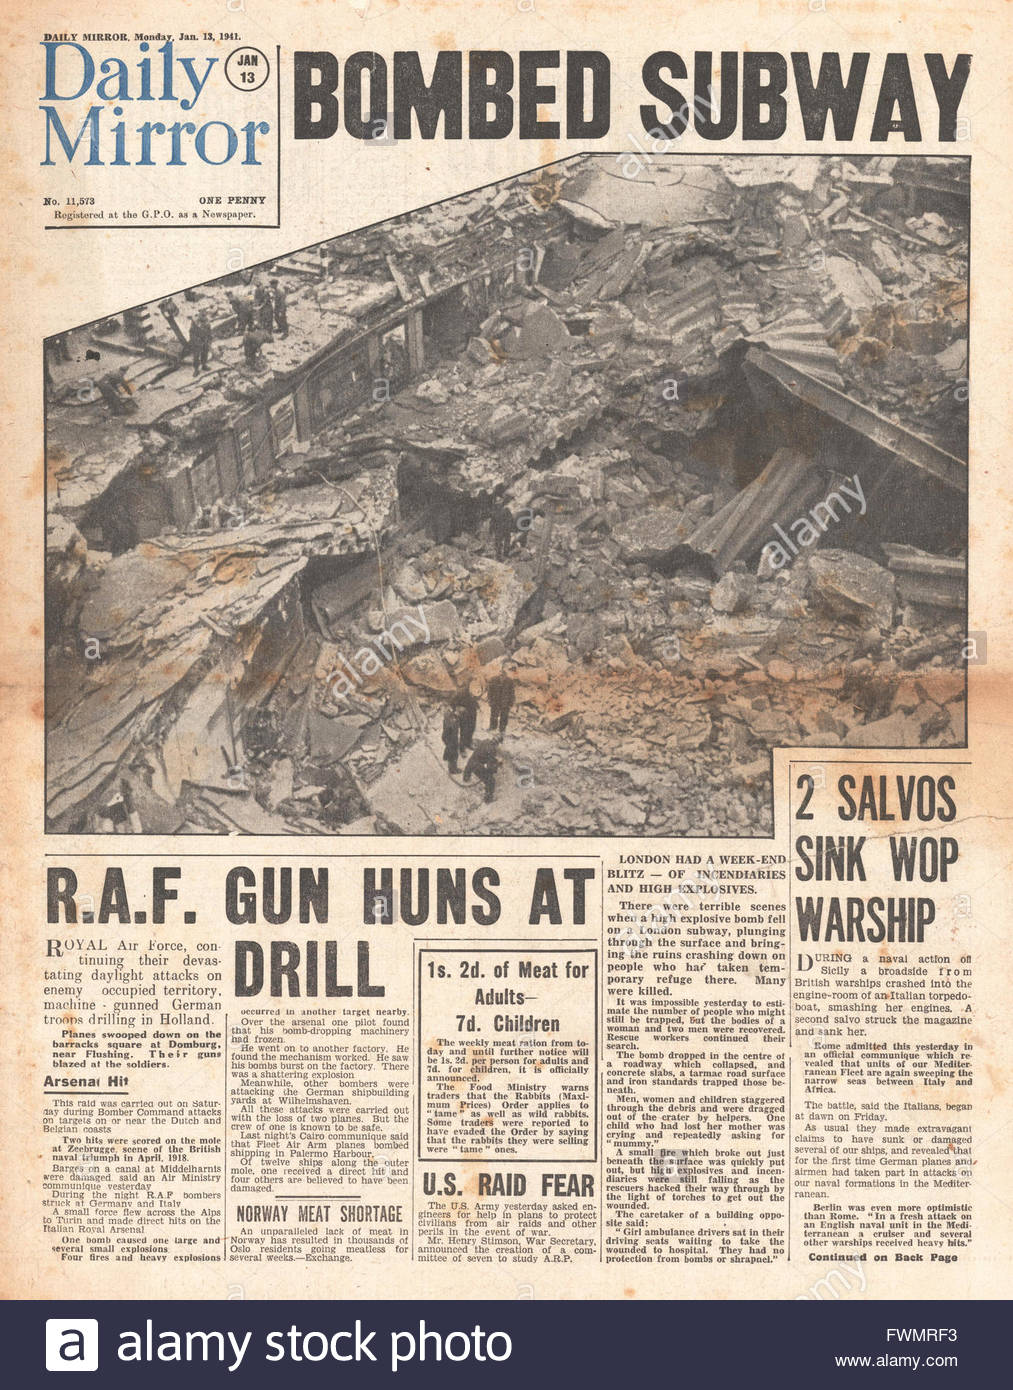 1941 front page Daily Mirror London Subway bombed - Stock Image